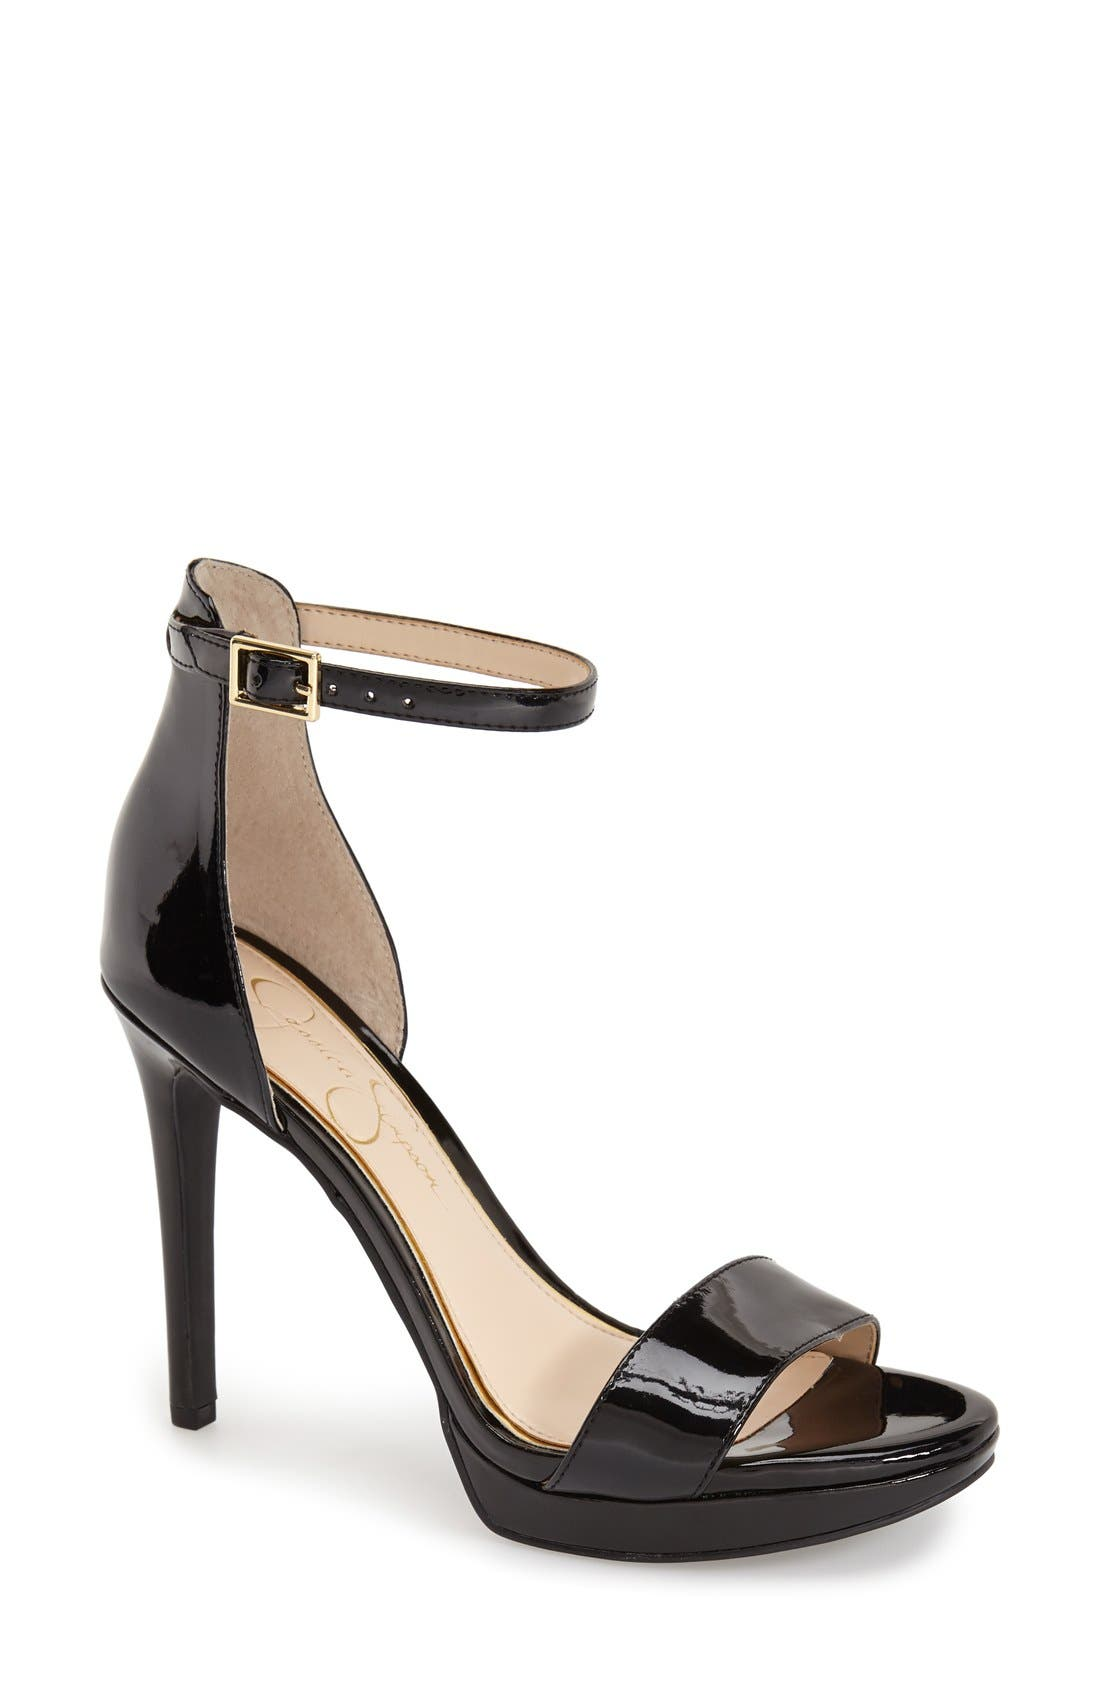 Alternate Image 1 Selected - Jessica Simpson 'Vaile' Sandal (Women)